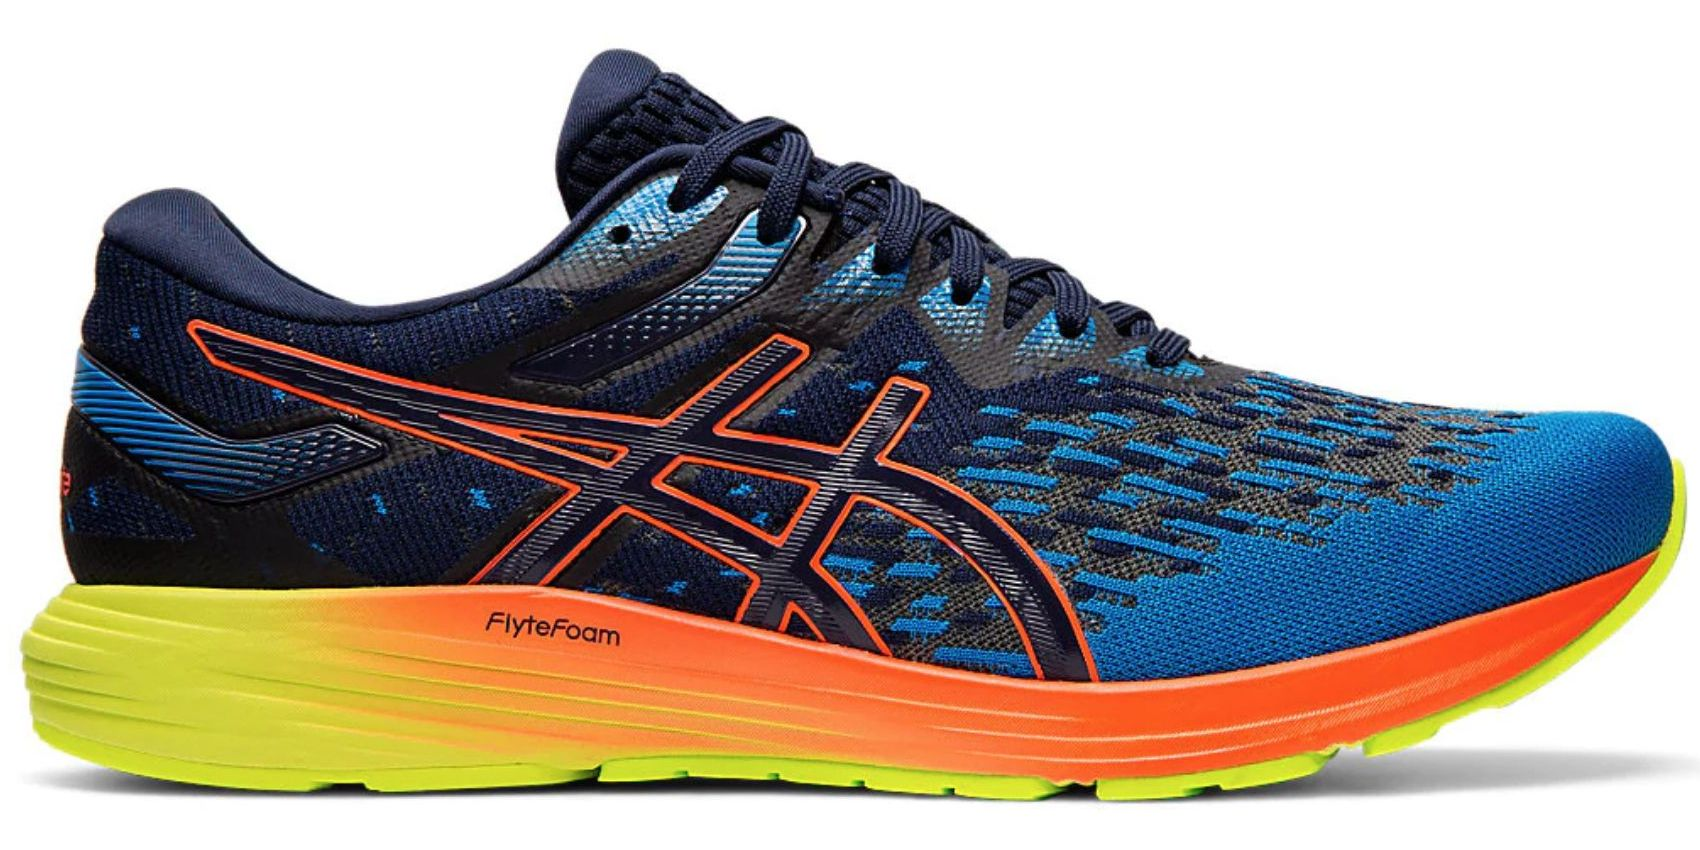 Asics Shoes Asics Running Shoes | Best Asics Shoes 2020